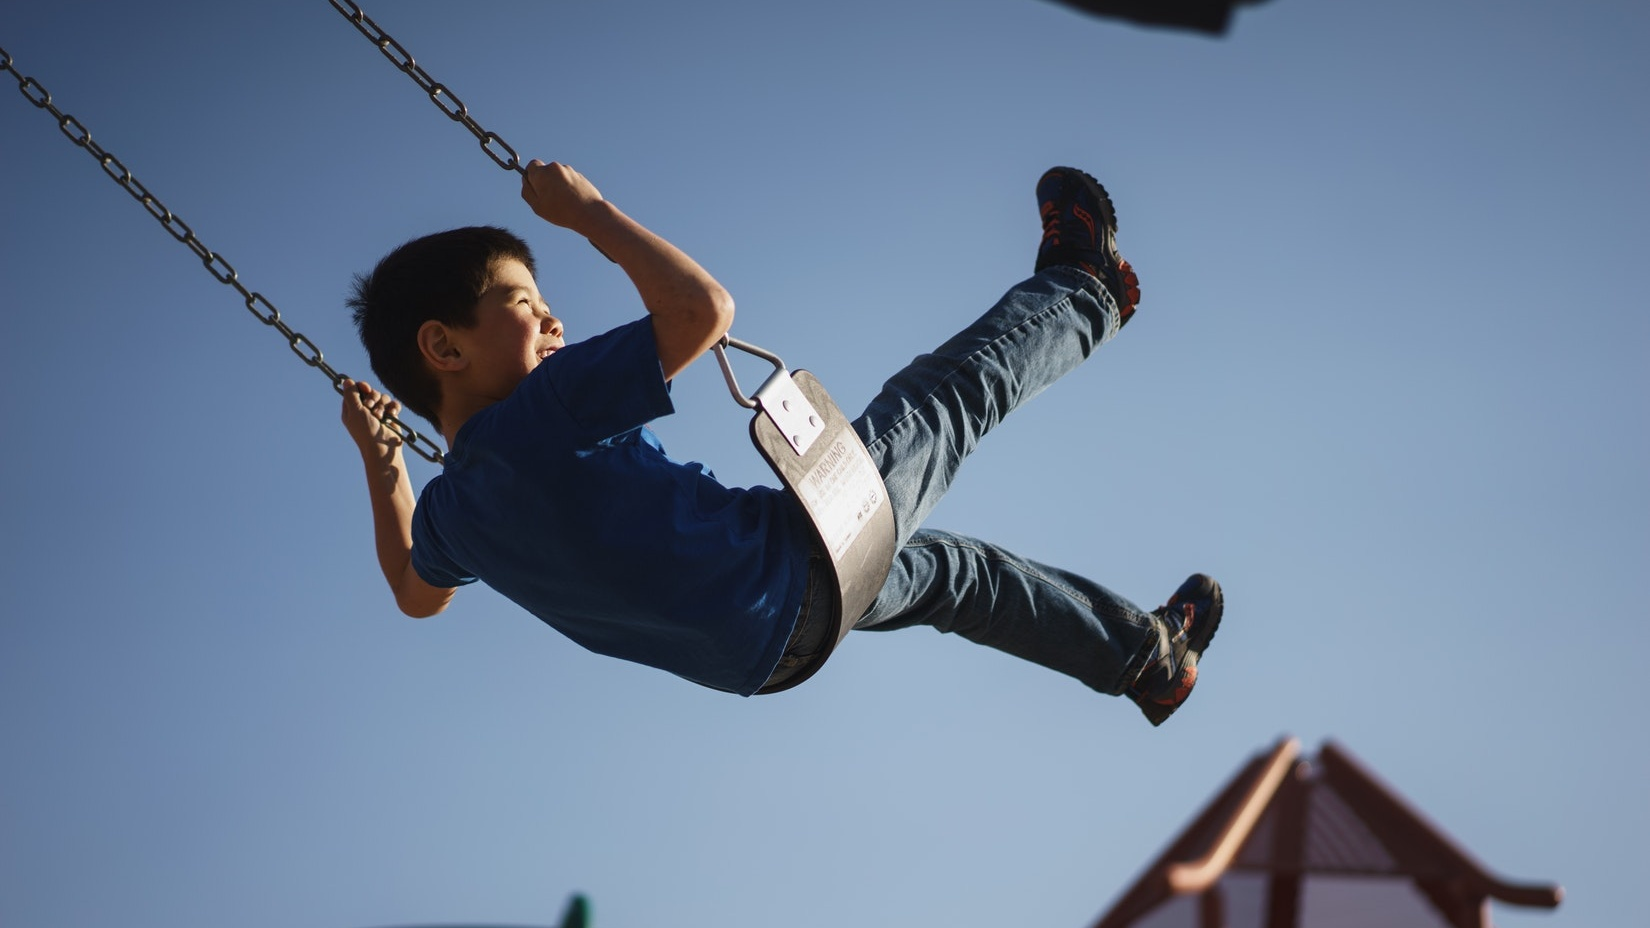 Child on swing in playground